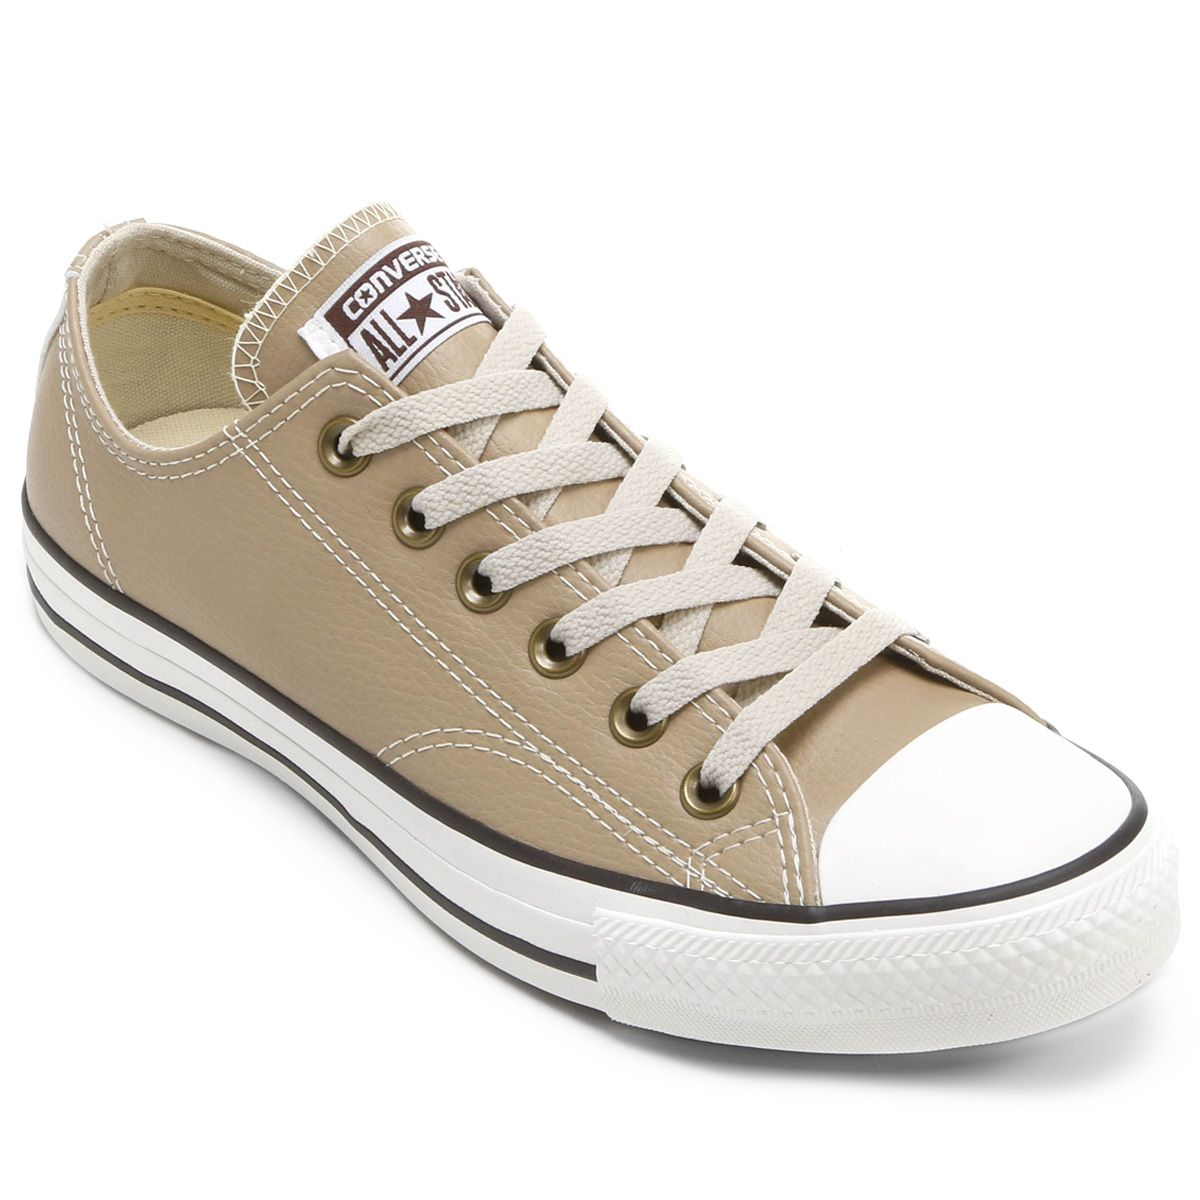 518ce1d3dc Tênis Converse All Star Ct As Malden Ox site netshoes | Outfits ...